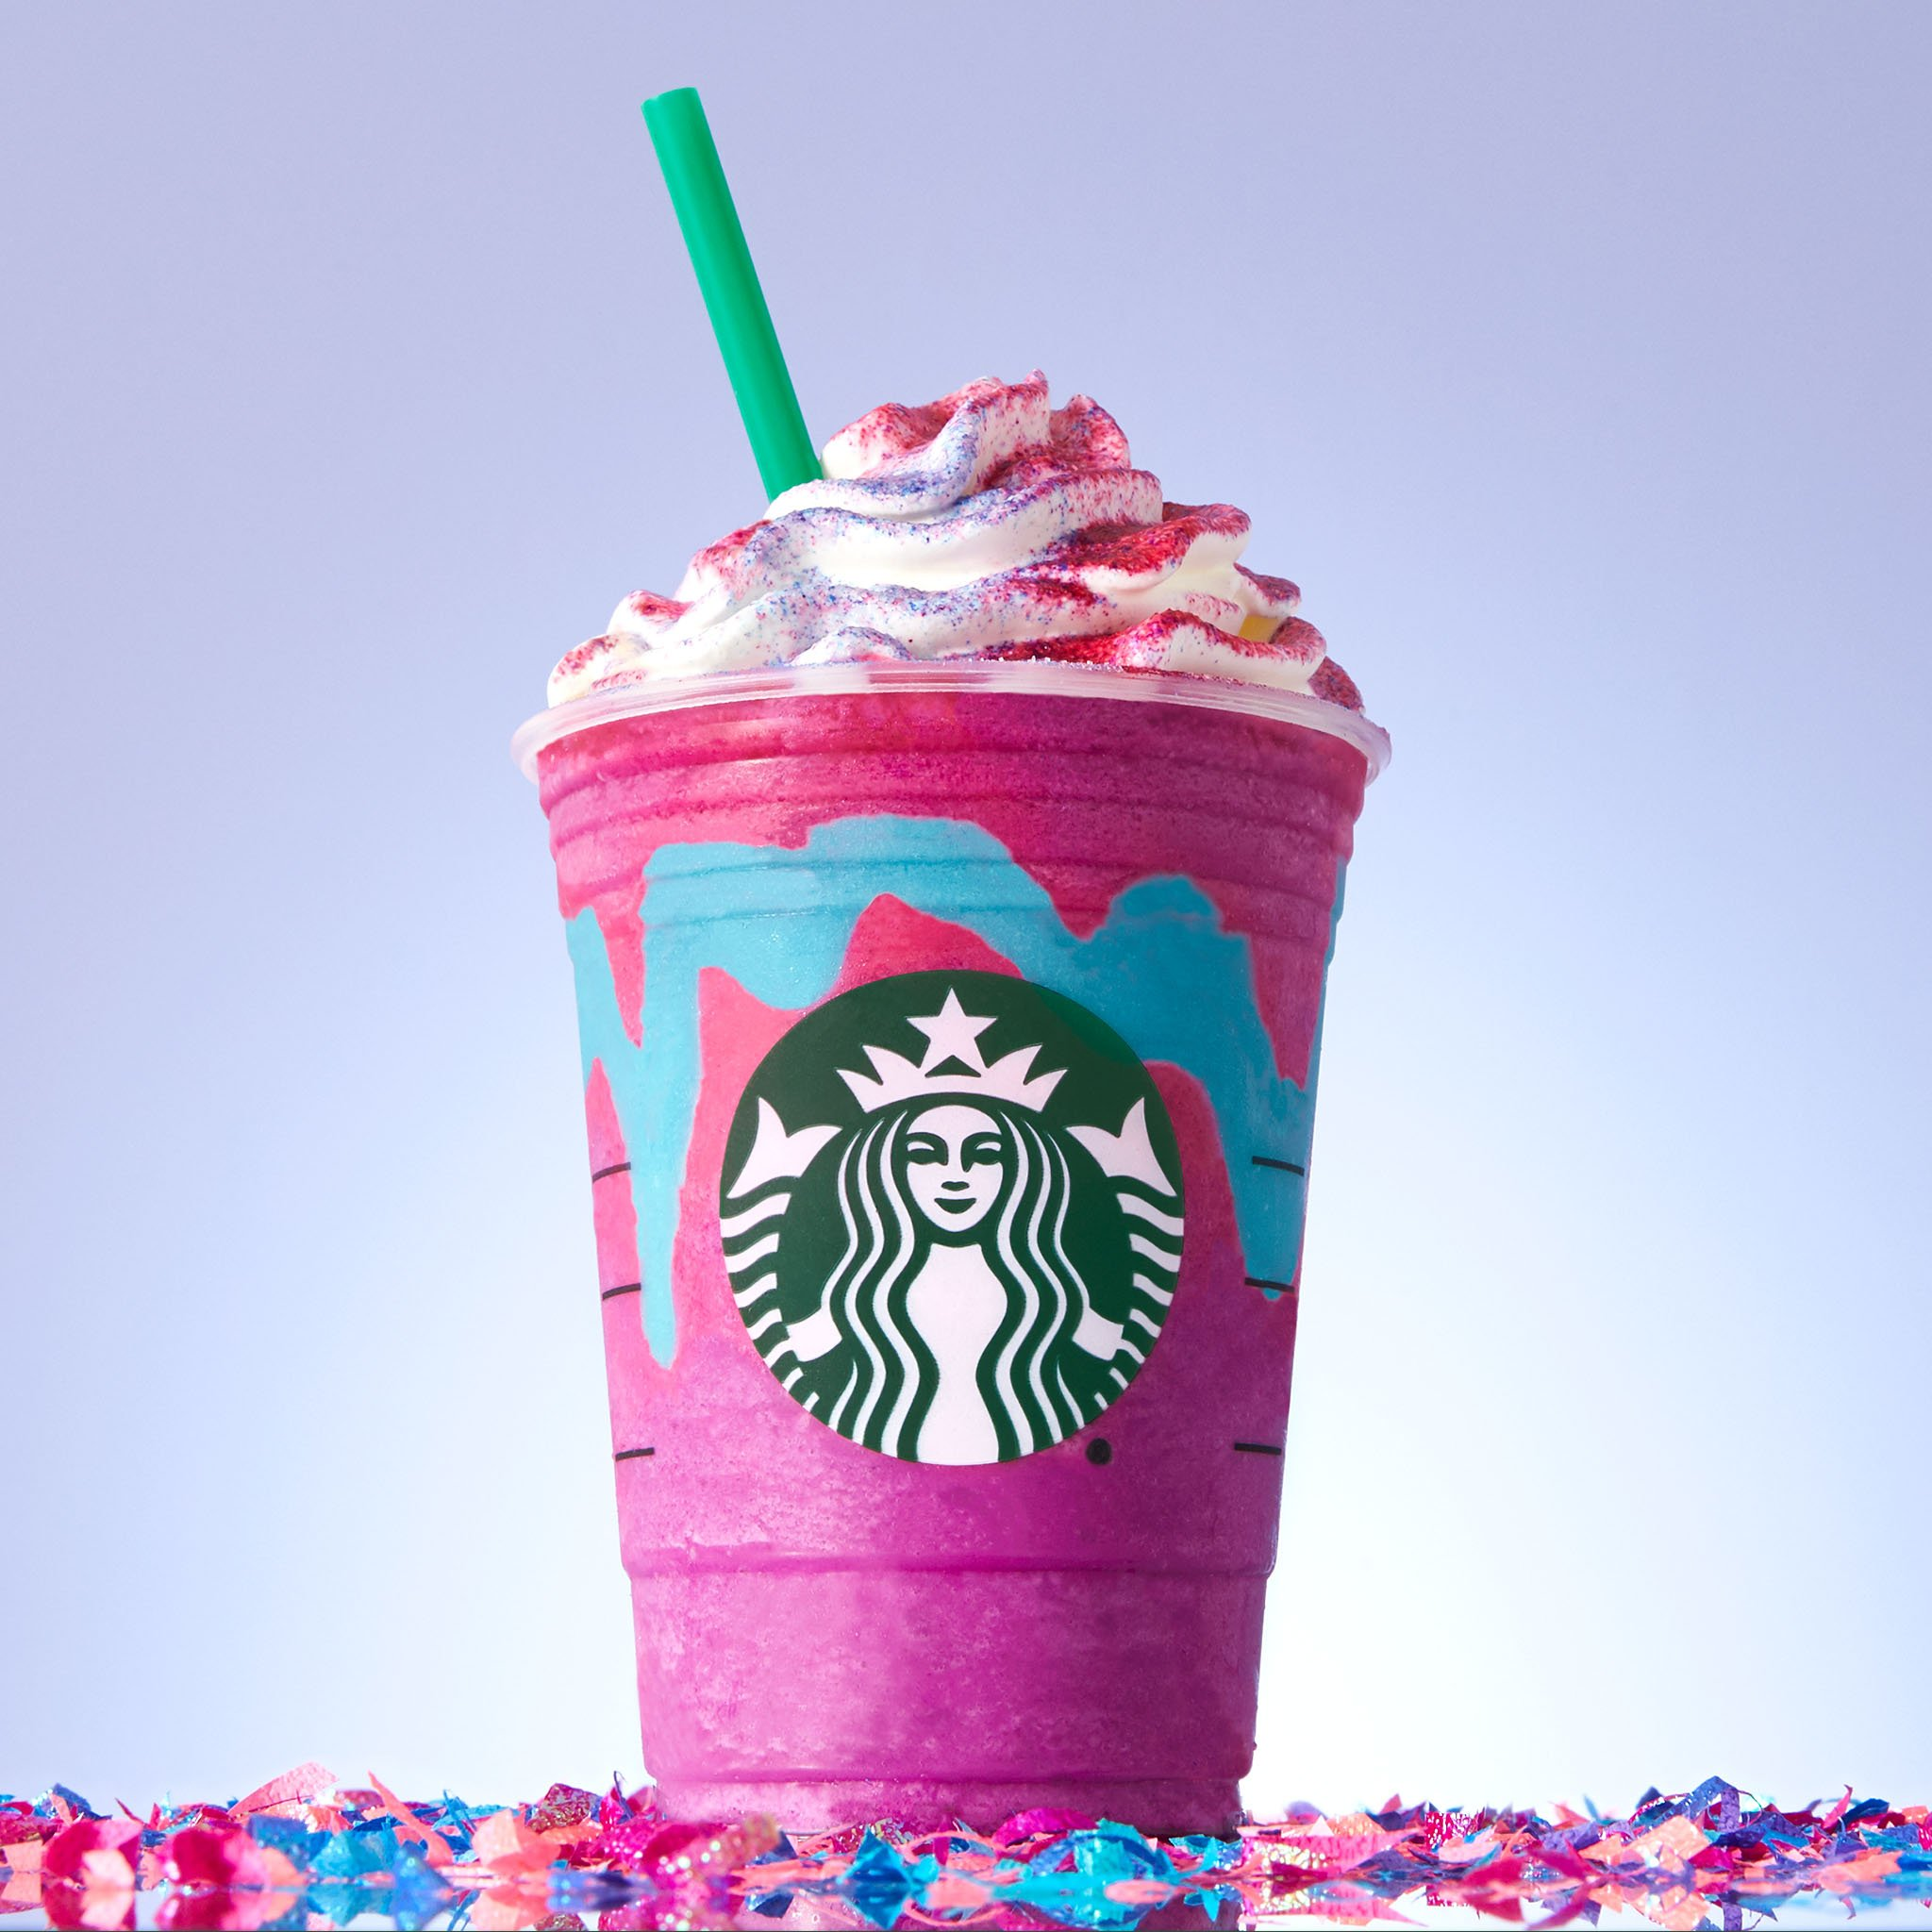 failed products Starbucks Unicorn Frappuccino